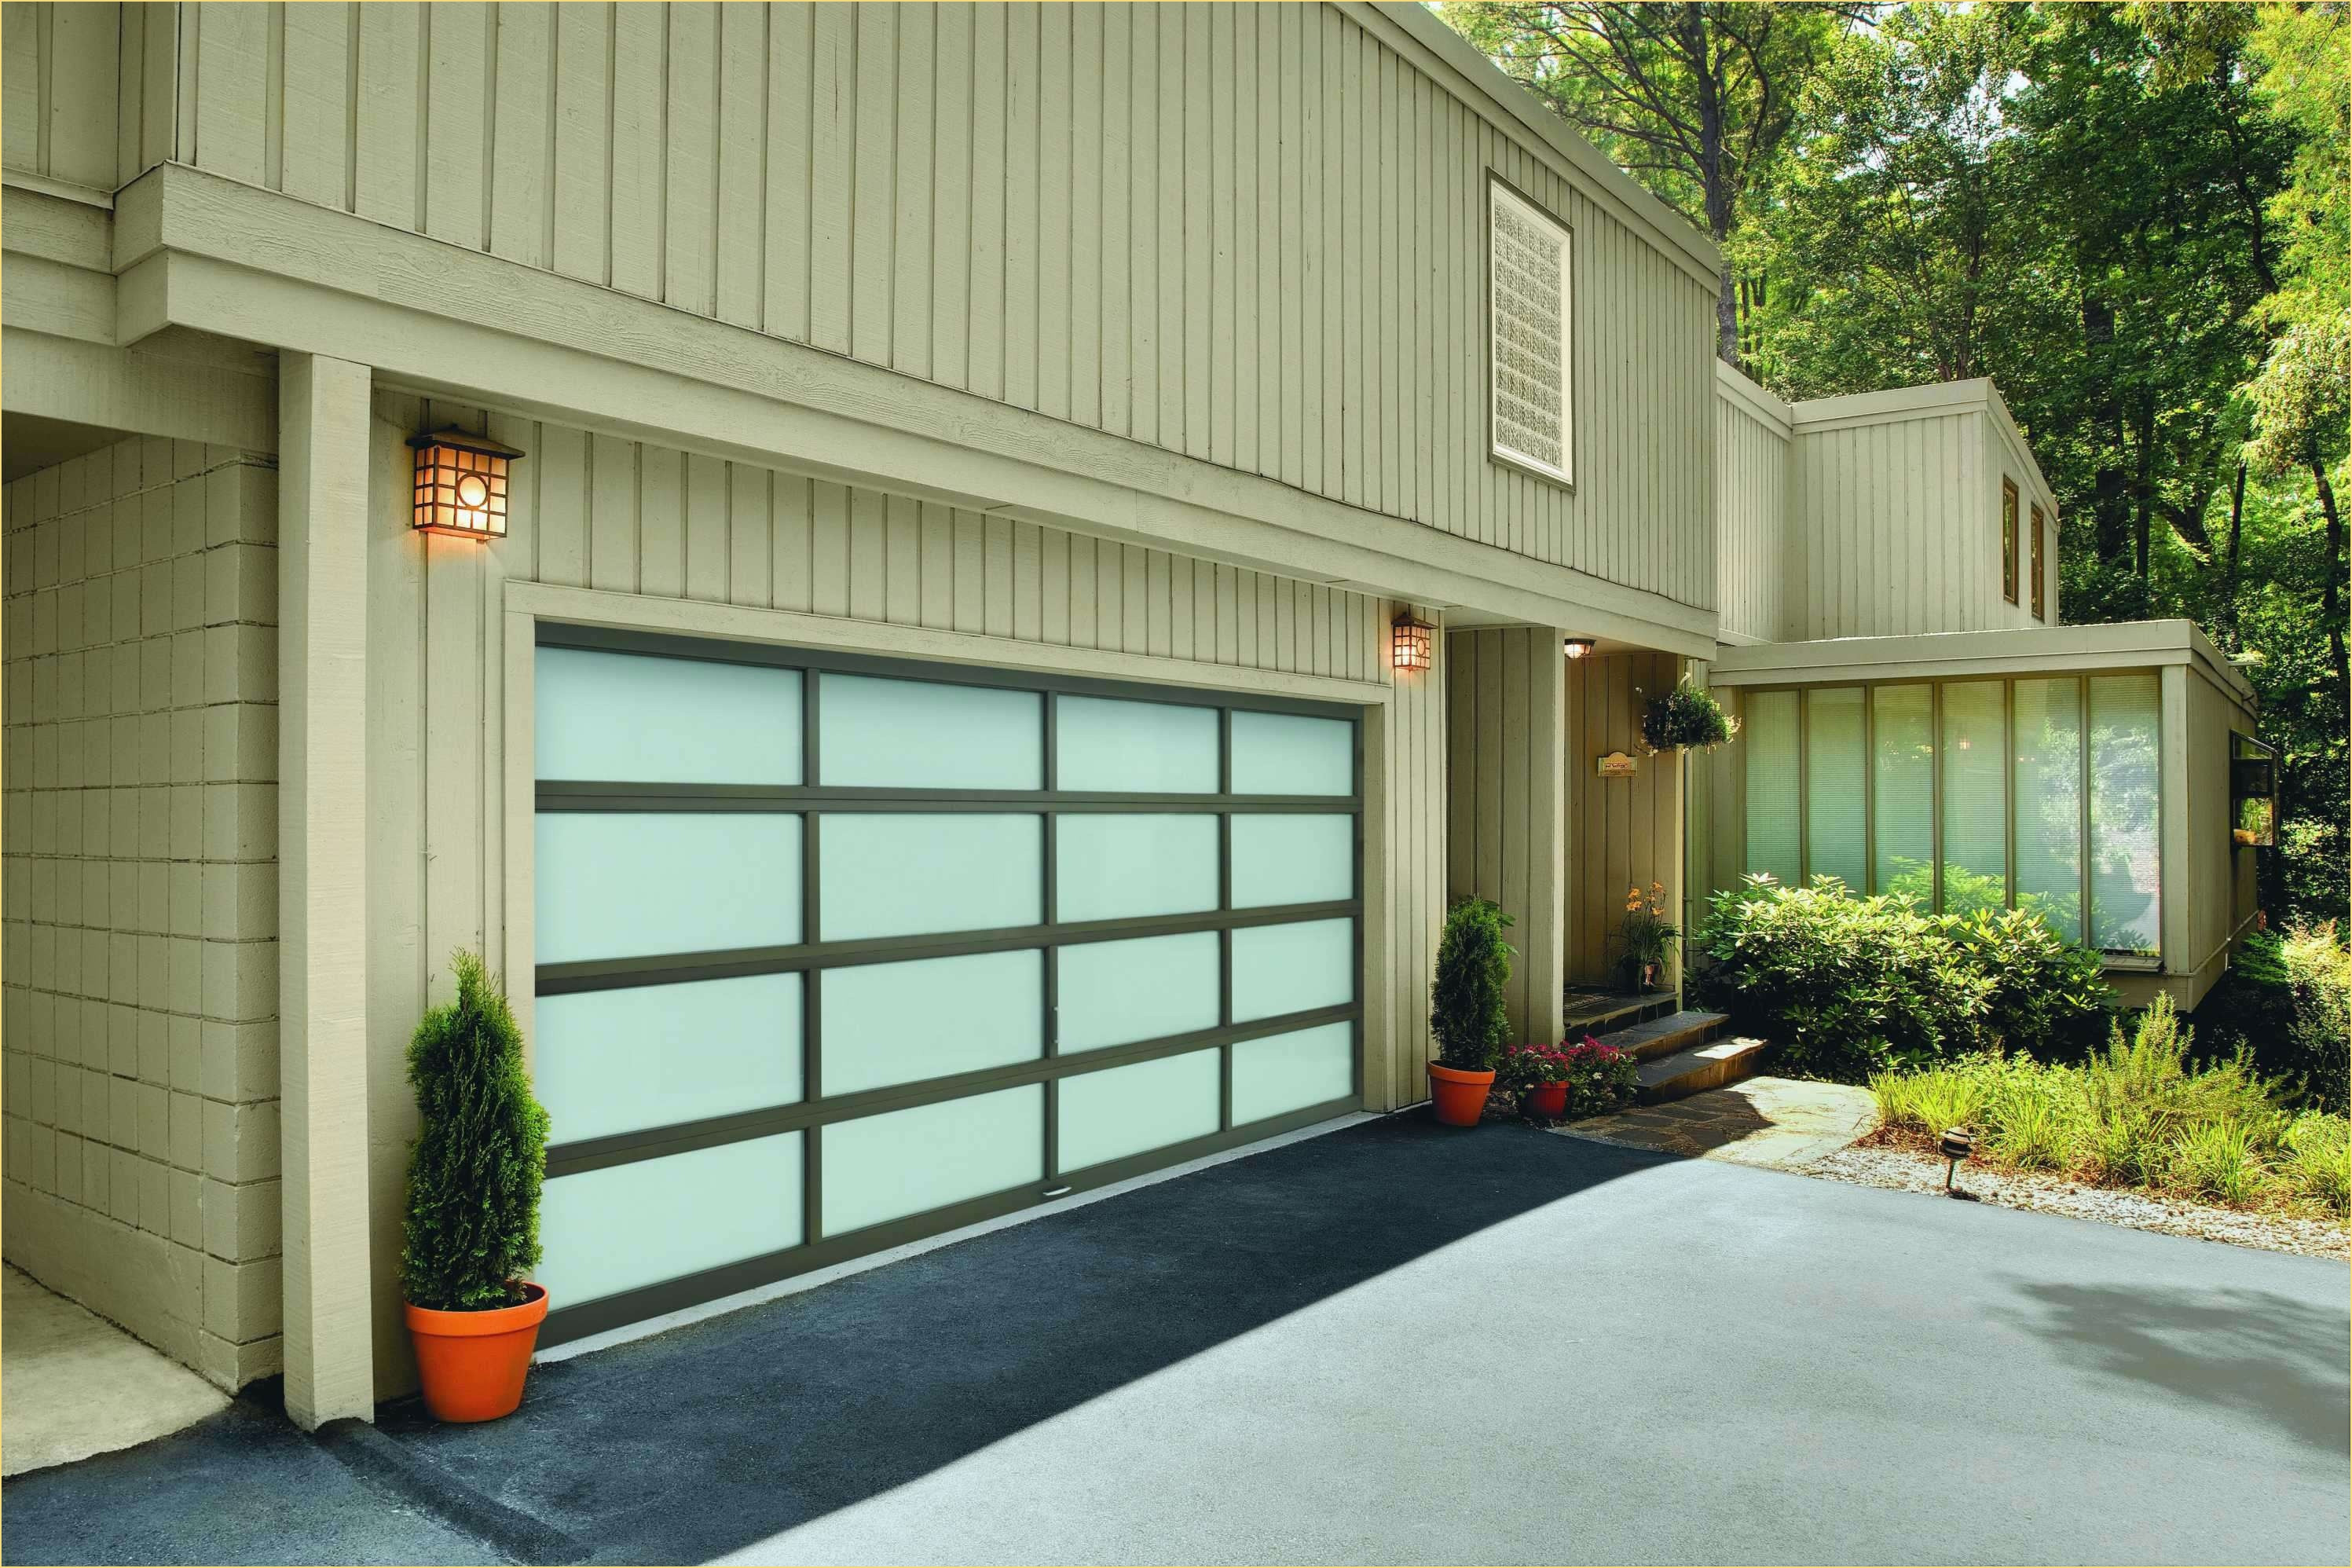 Garage Mit Carport Schön Outdoor Garage Design Best Sample Outdoor Garage Design Ideas House